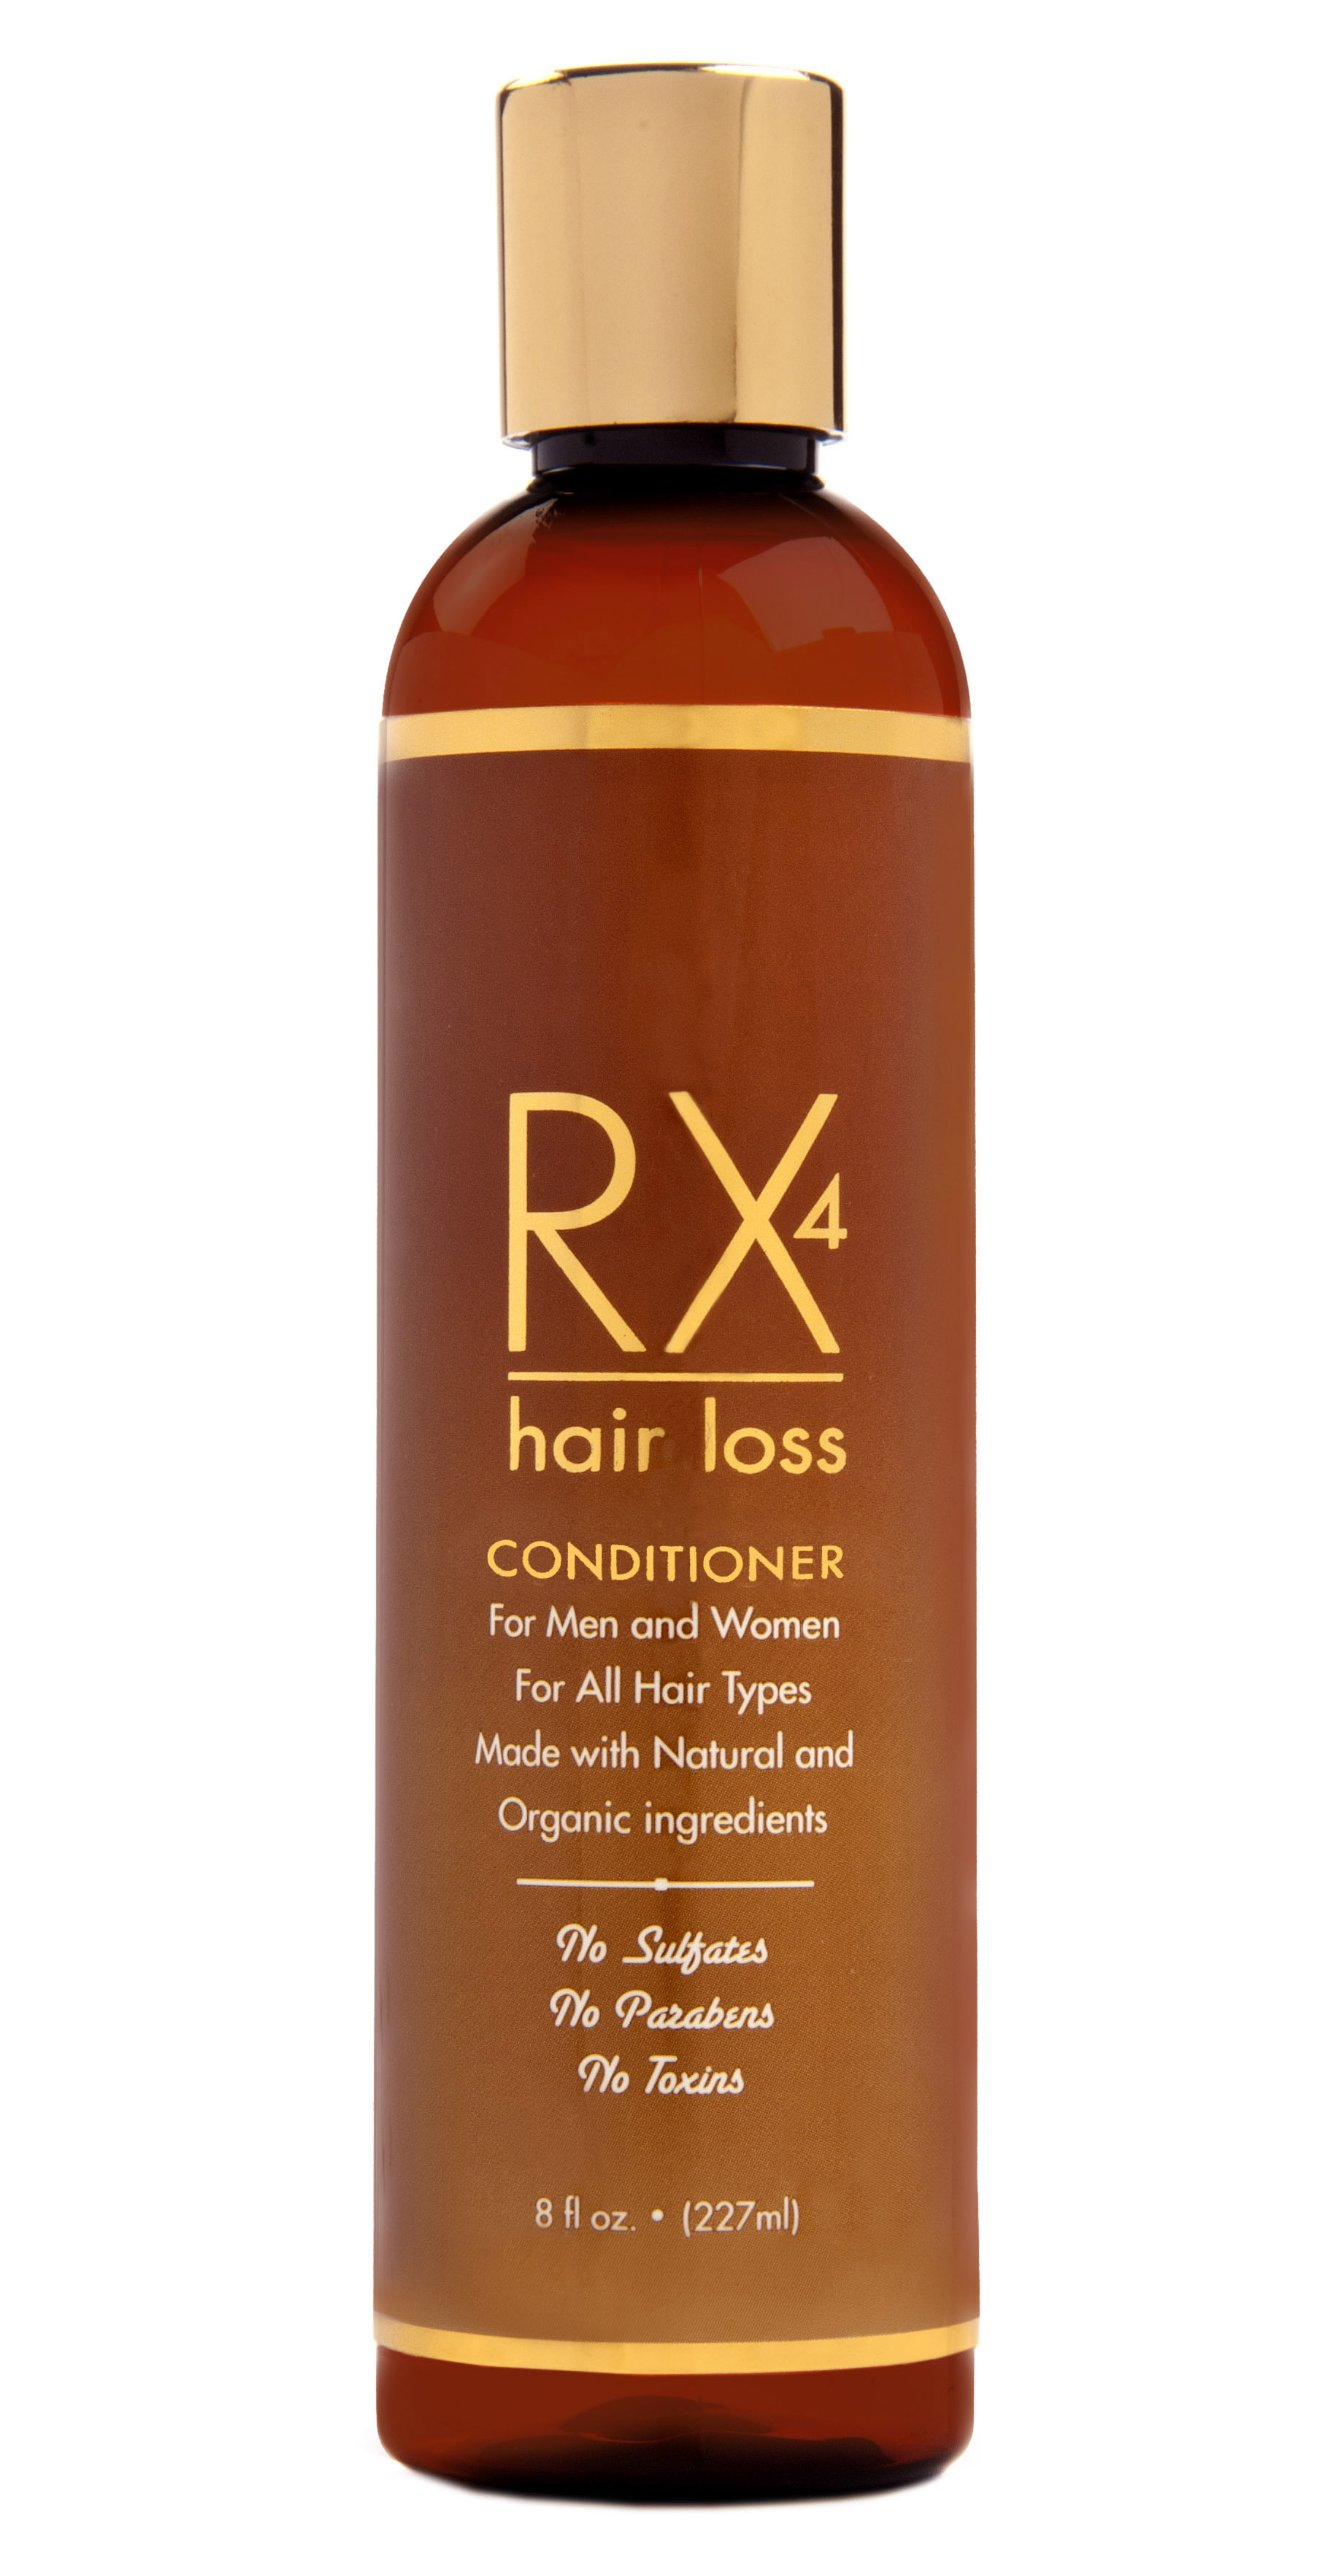 RX 4 Hair Loss Conditioner Natural & Organic Product Anti-Hair Loss Treatment for Men and Women. Guaranteed.FREE Hair Loss Guide.